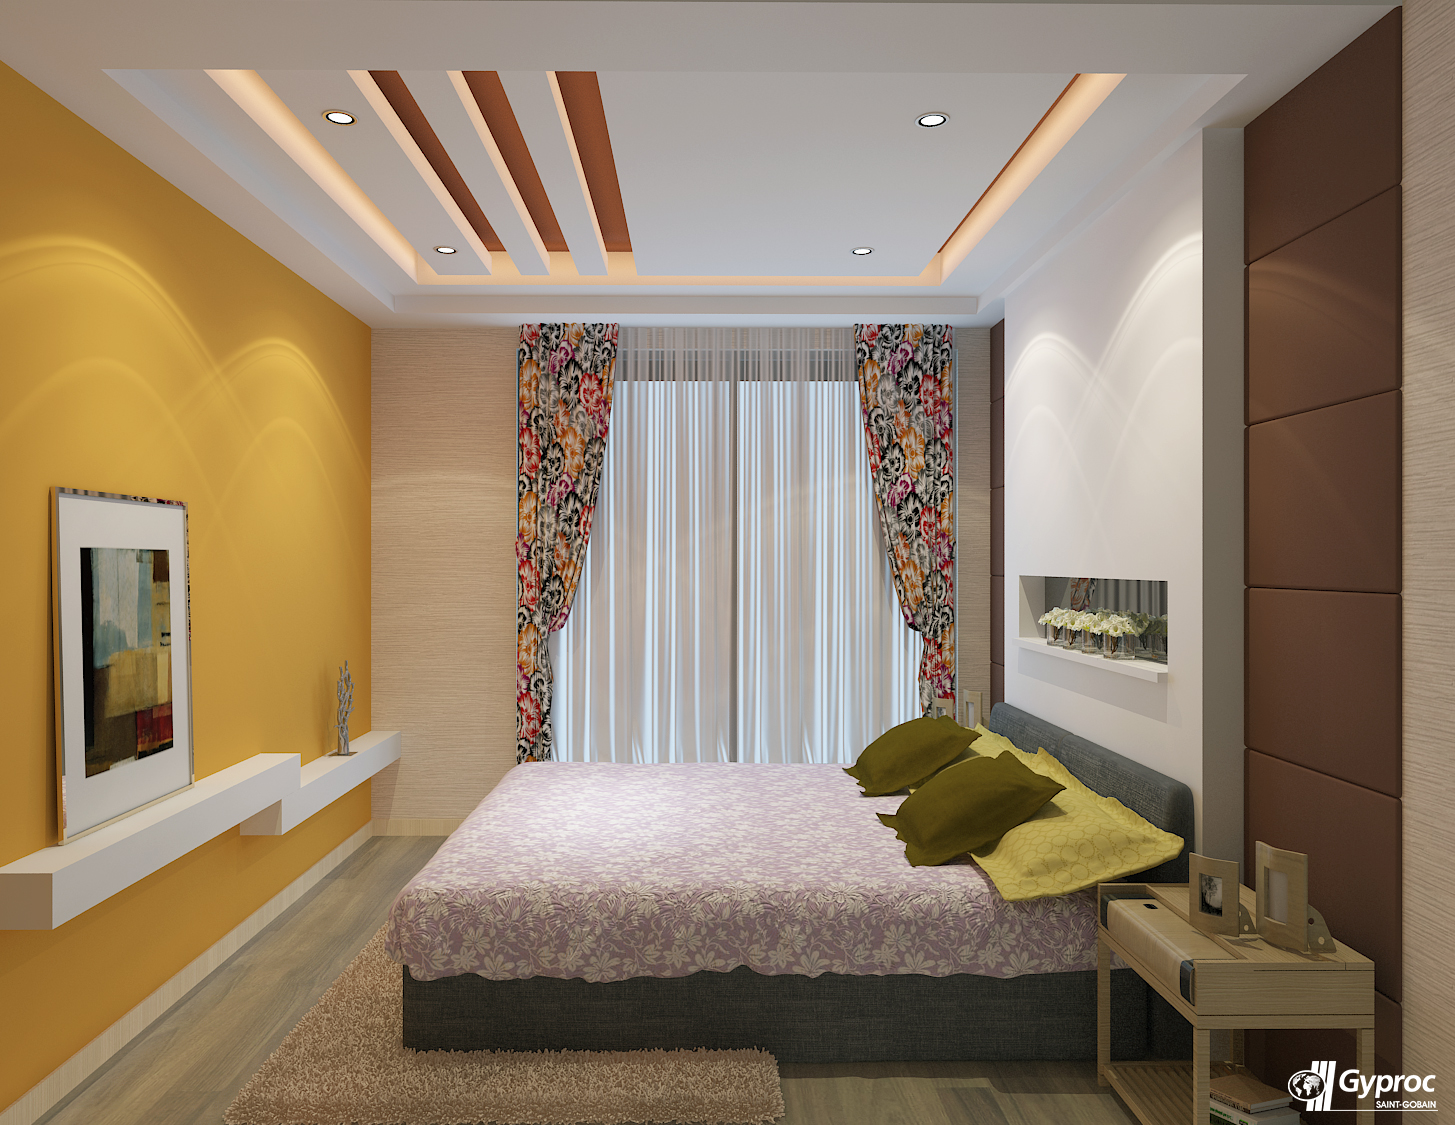 Bedroom Ceiling Interior Gyproc Falseceilings Are The Perfect Way To Give Your